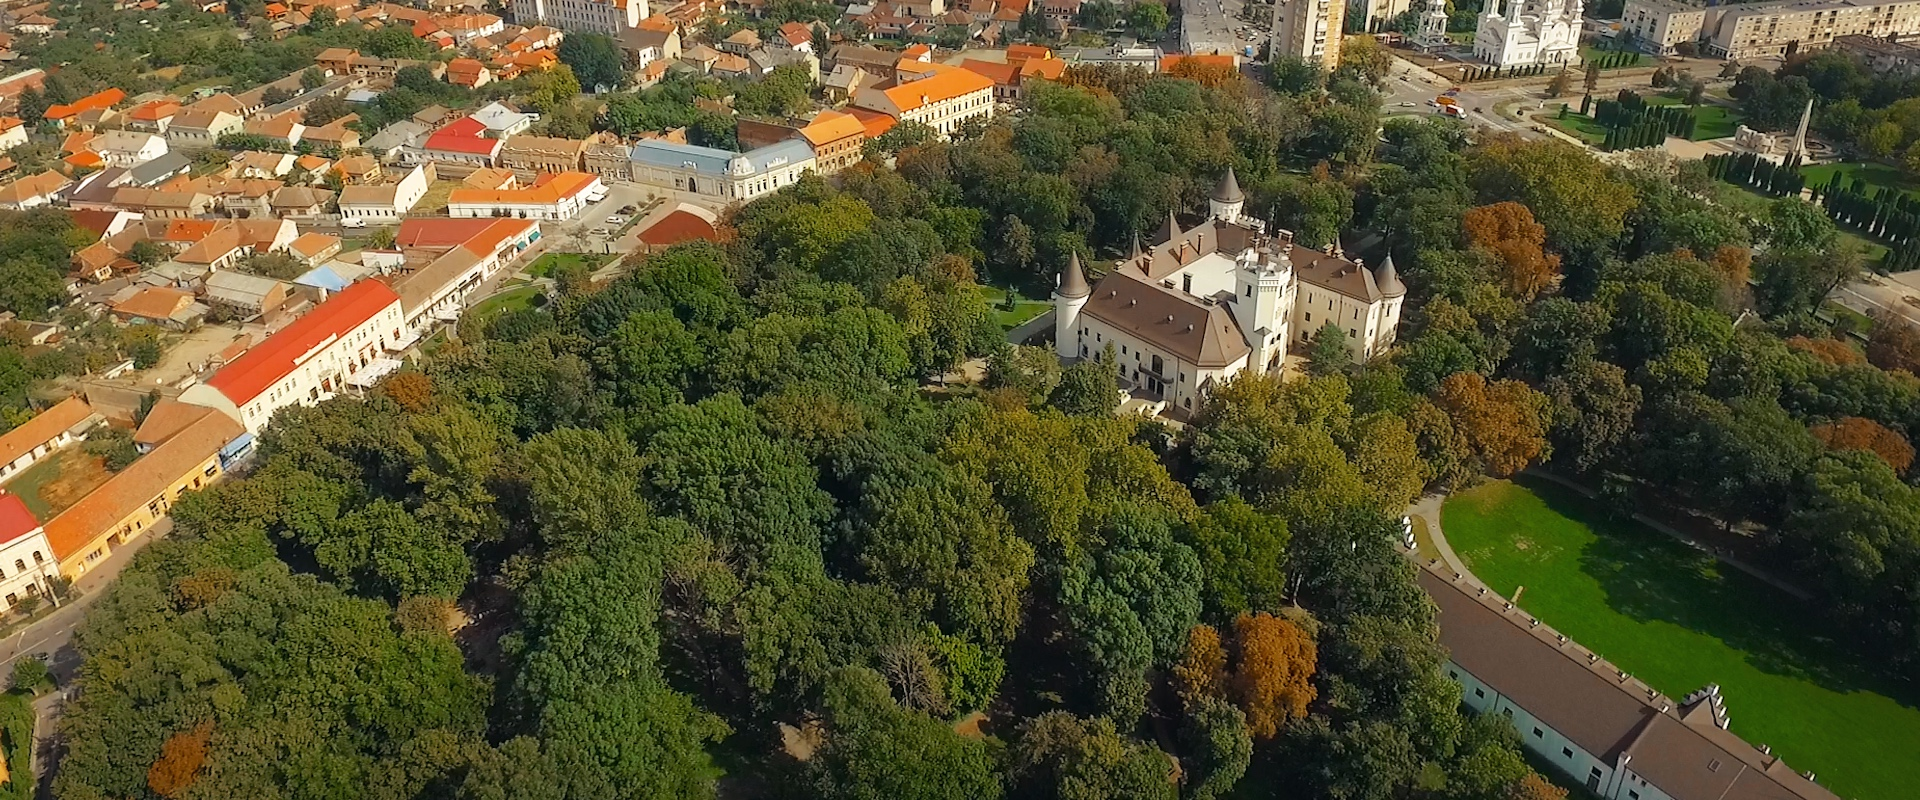 Karolyi Castle aerial view in Carei, Transylvania